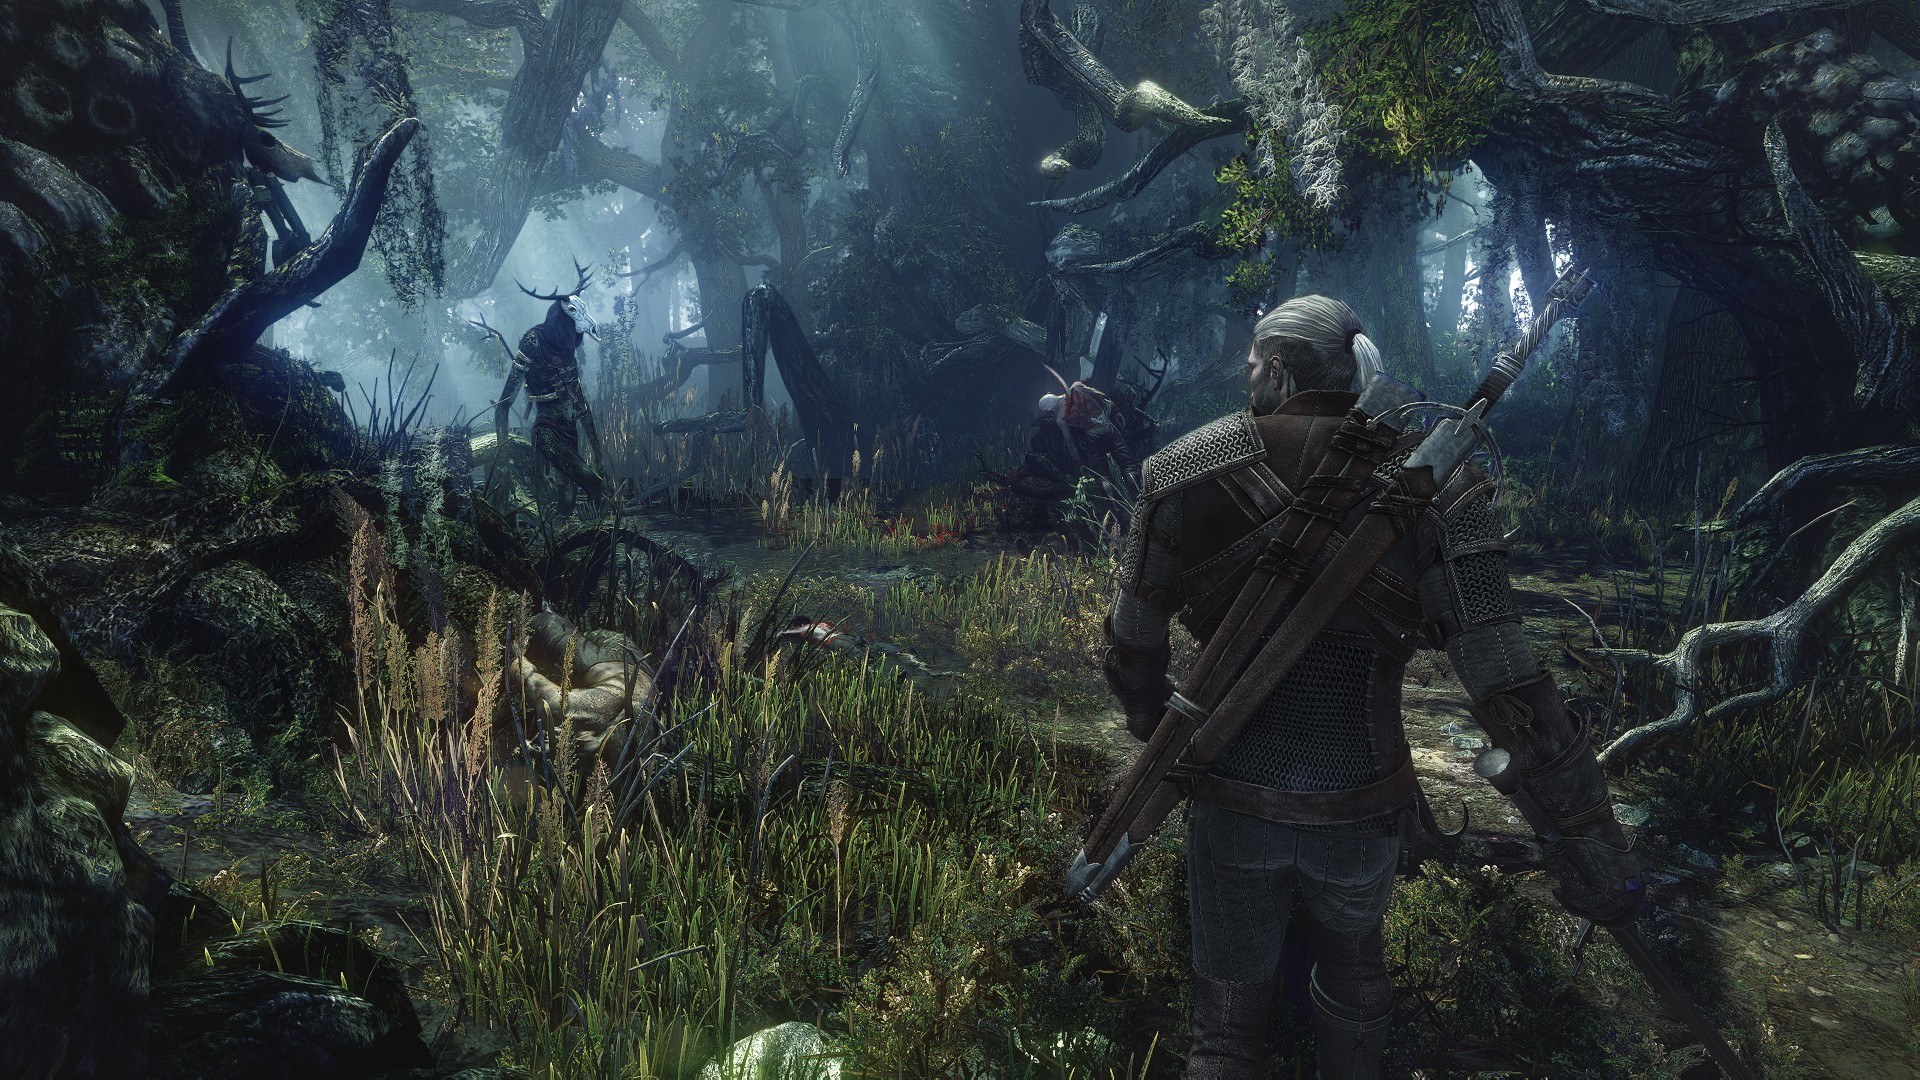 witcher3forest